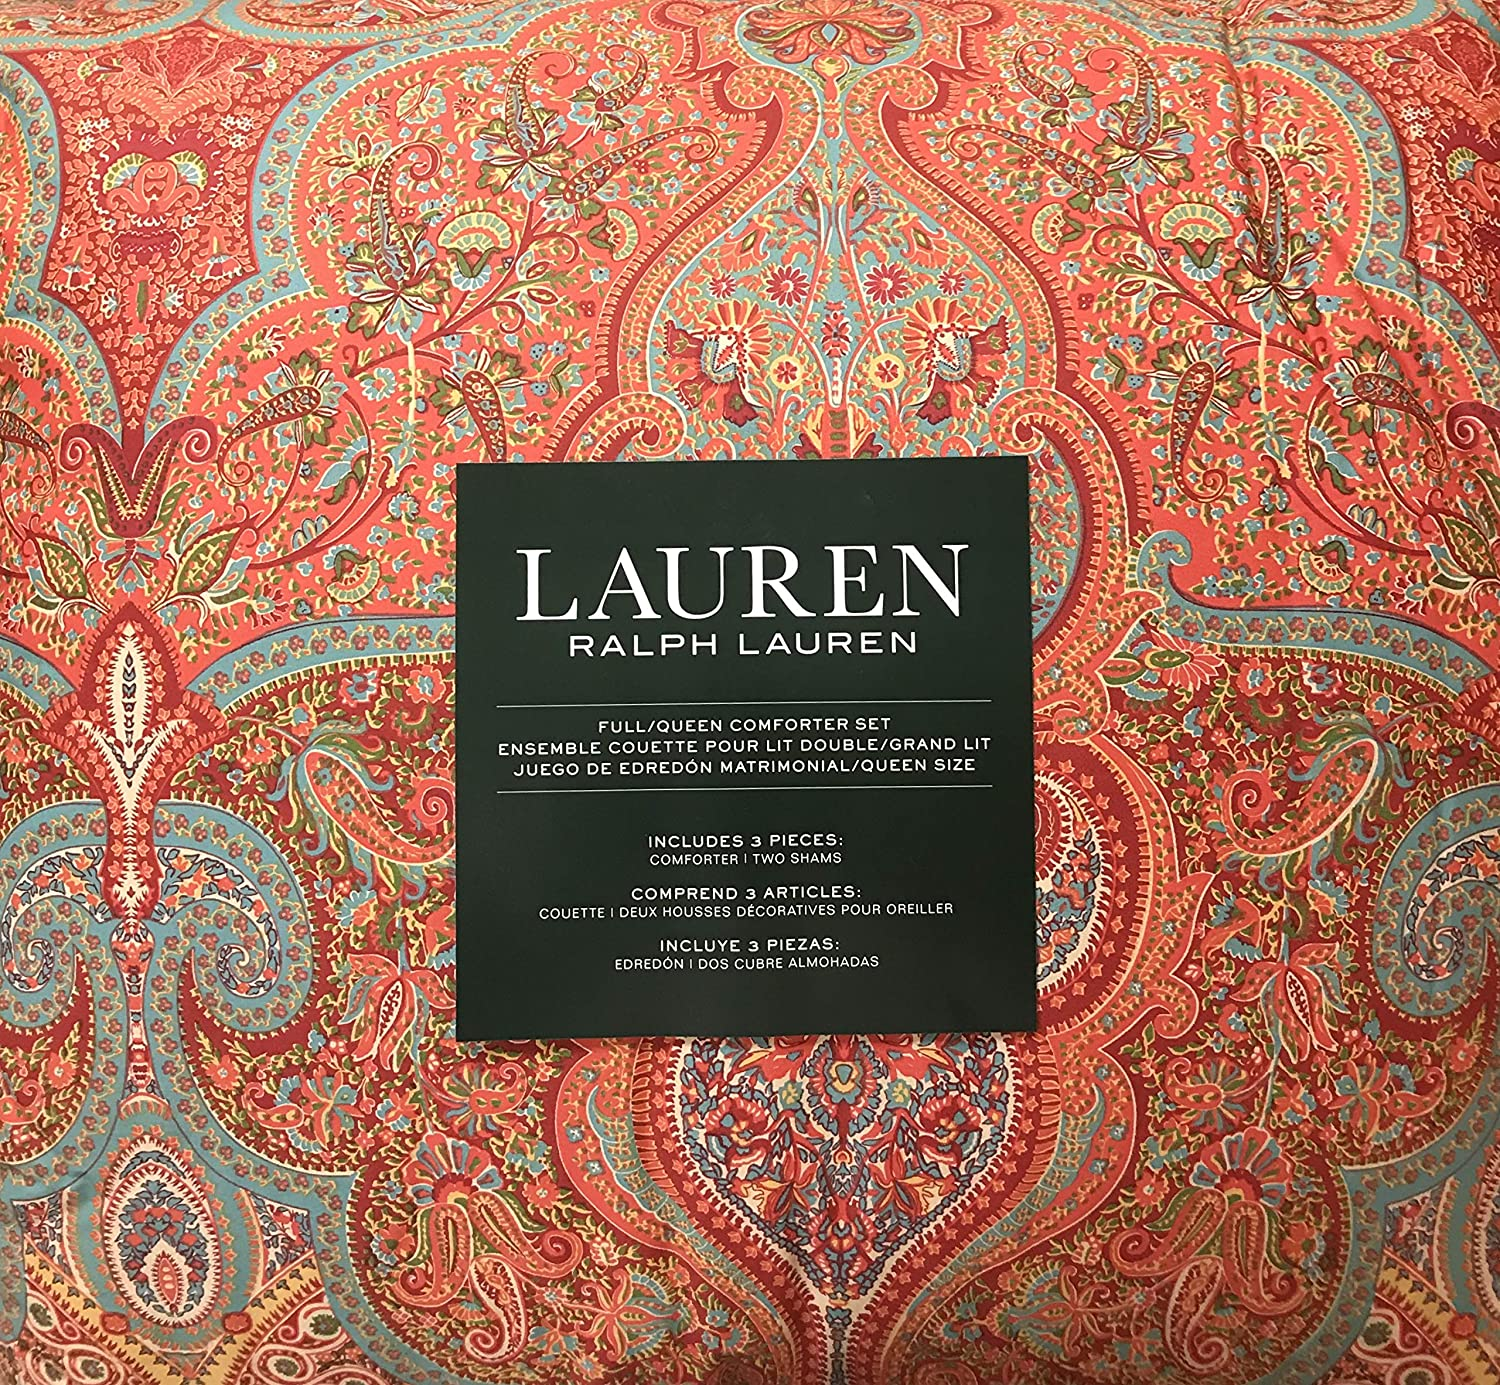 Ralph Lauren Reversible Queen Comforter Set: 100% Cotton - Beautiful Floral Paisley Pattern in Red, Red-Orange, Blue, Green, Teal Blue, Mustard Yellow, Cream | Reverse: Abstract Dotted Floral Paisley